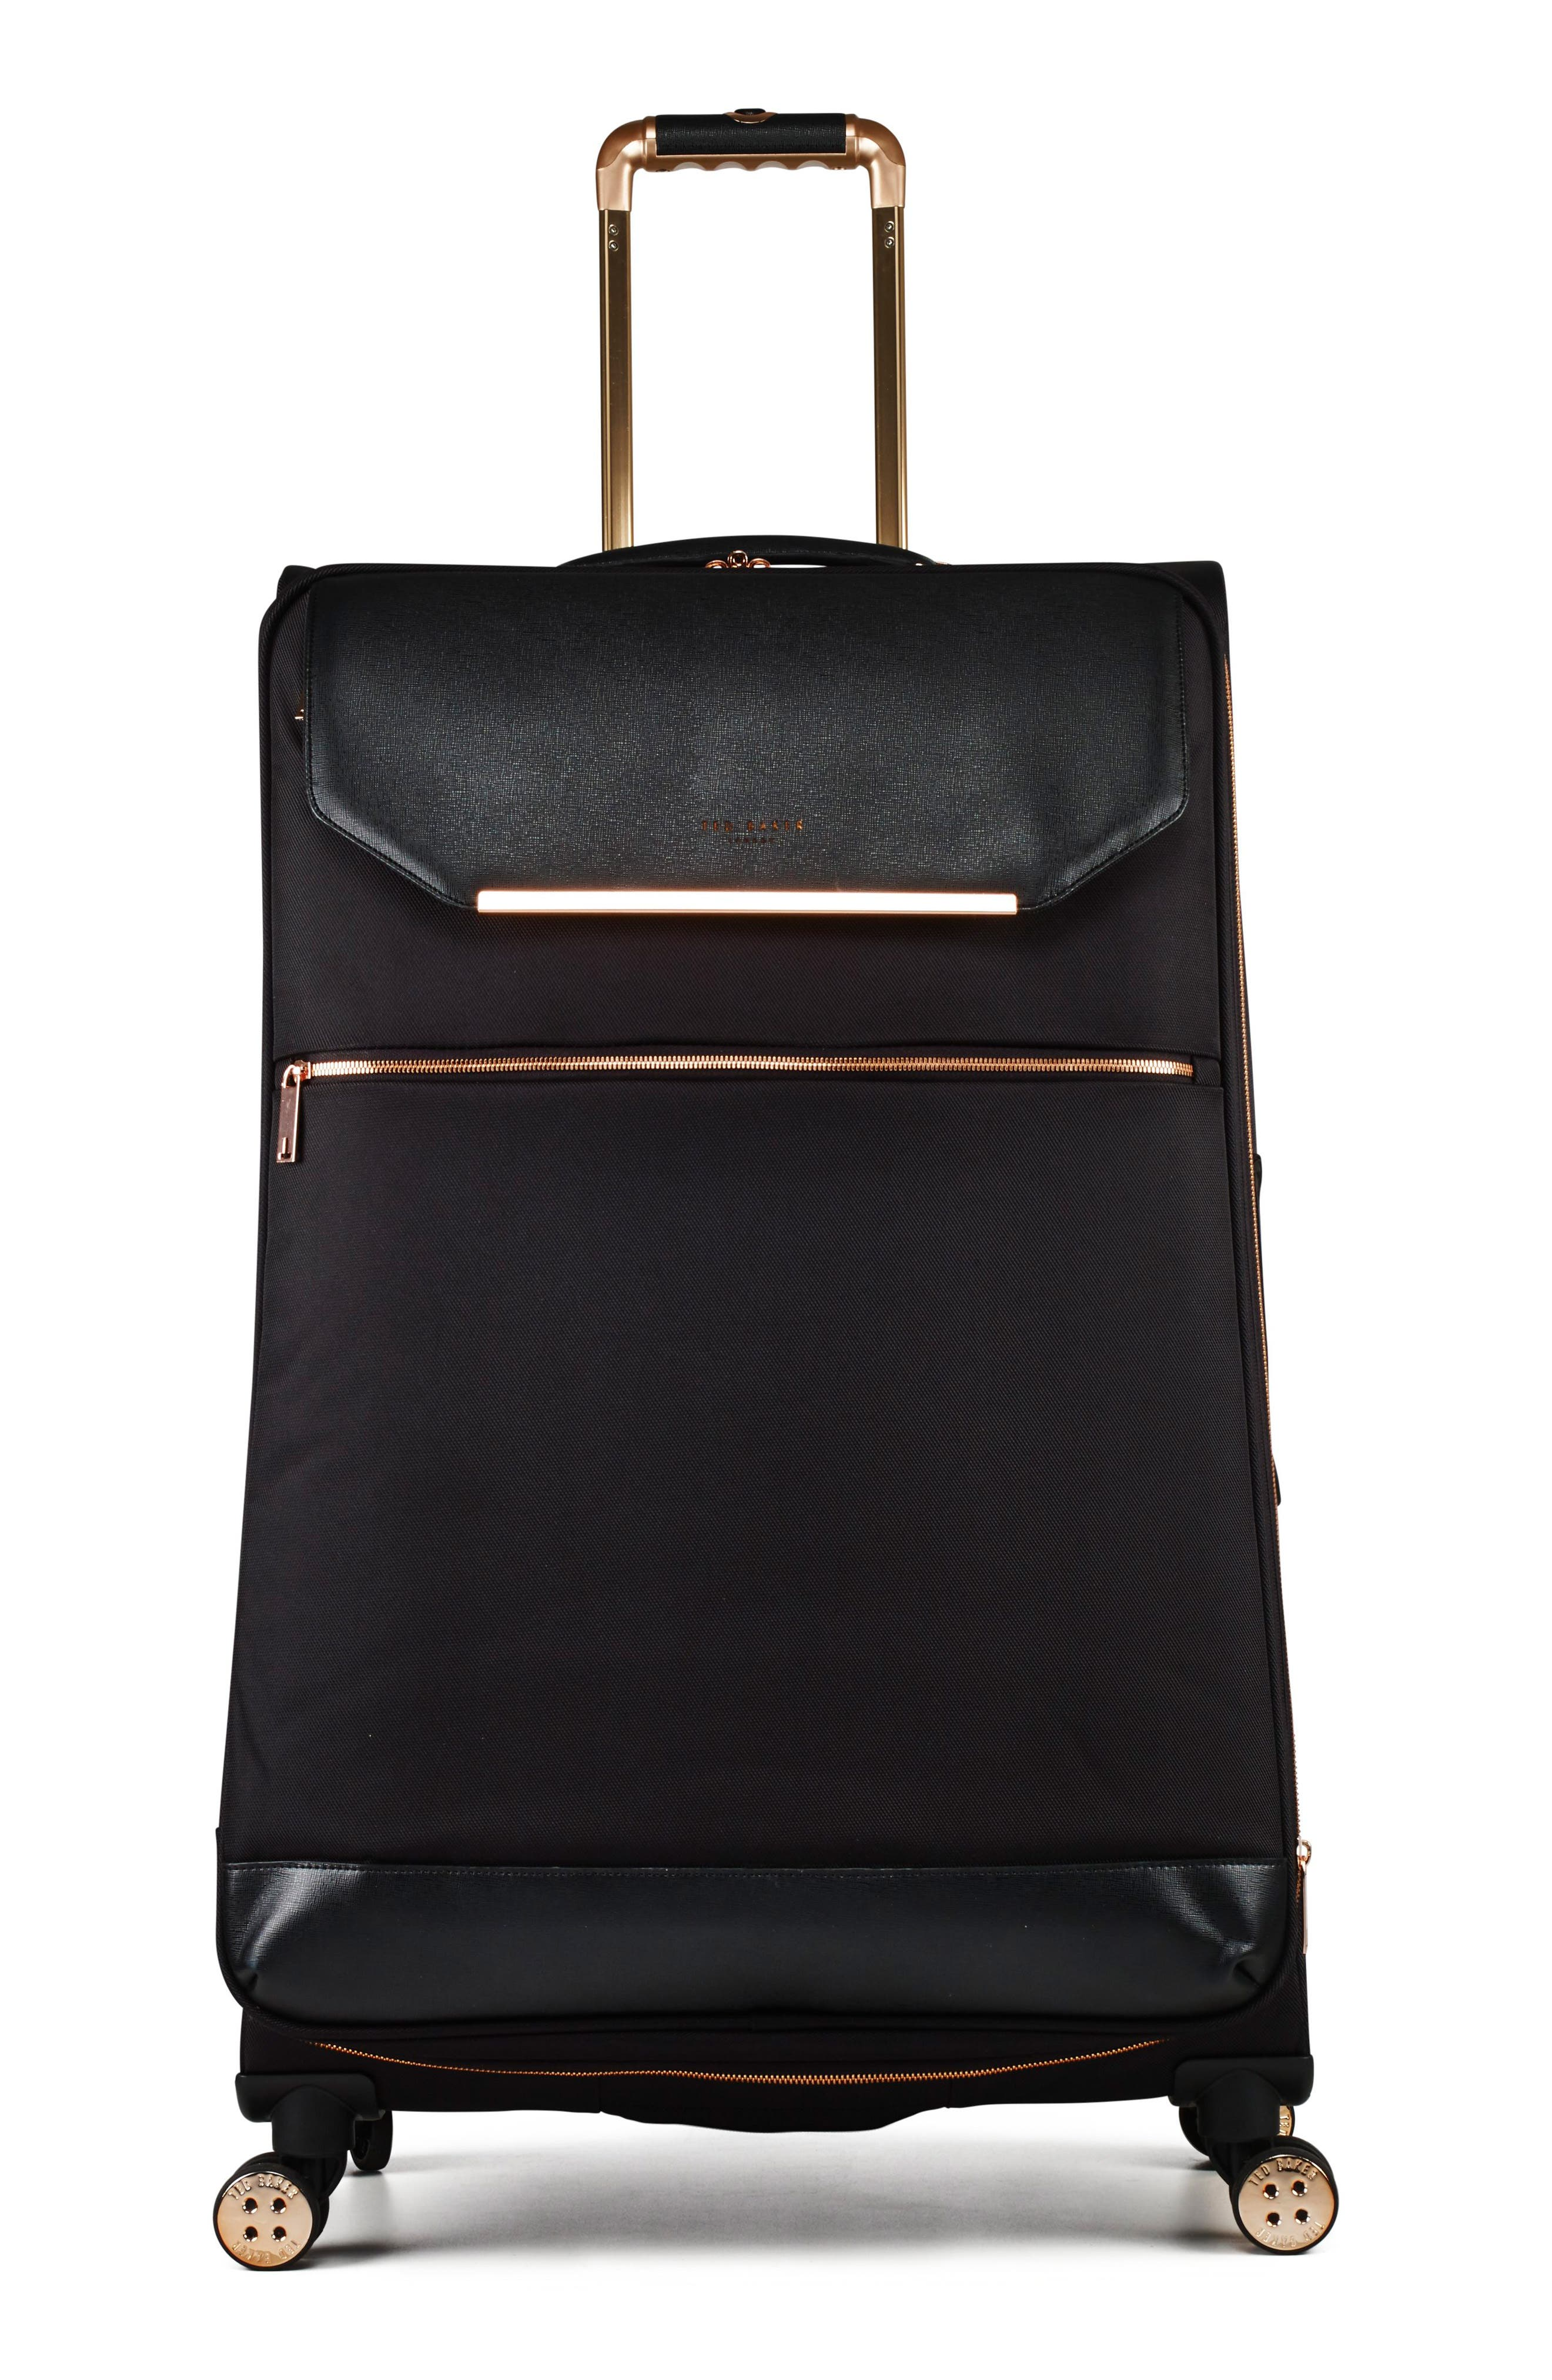 Ted Baker London Trolley Packing Case (32 Inch)